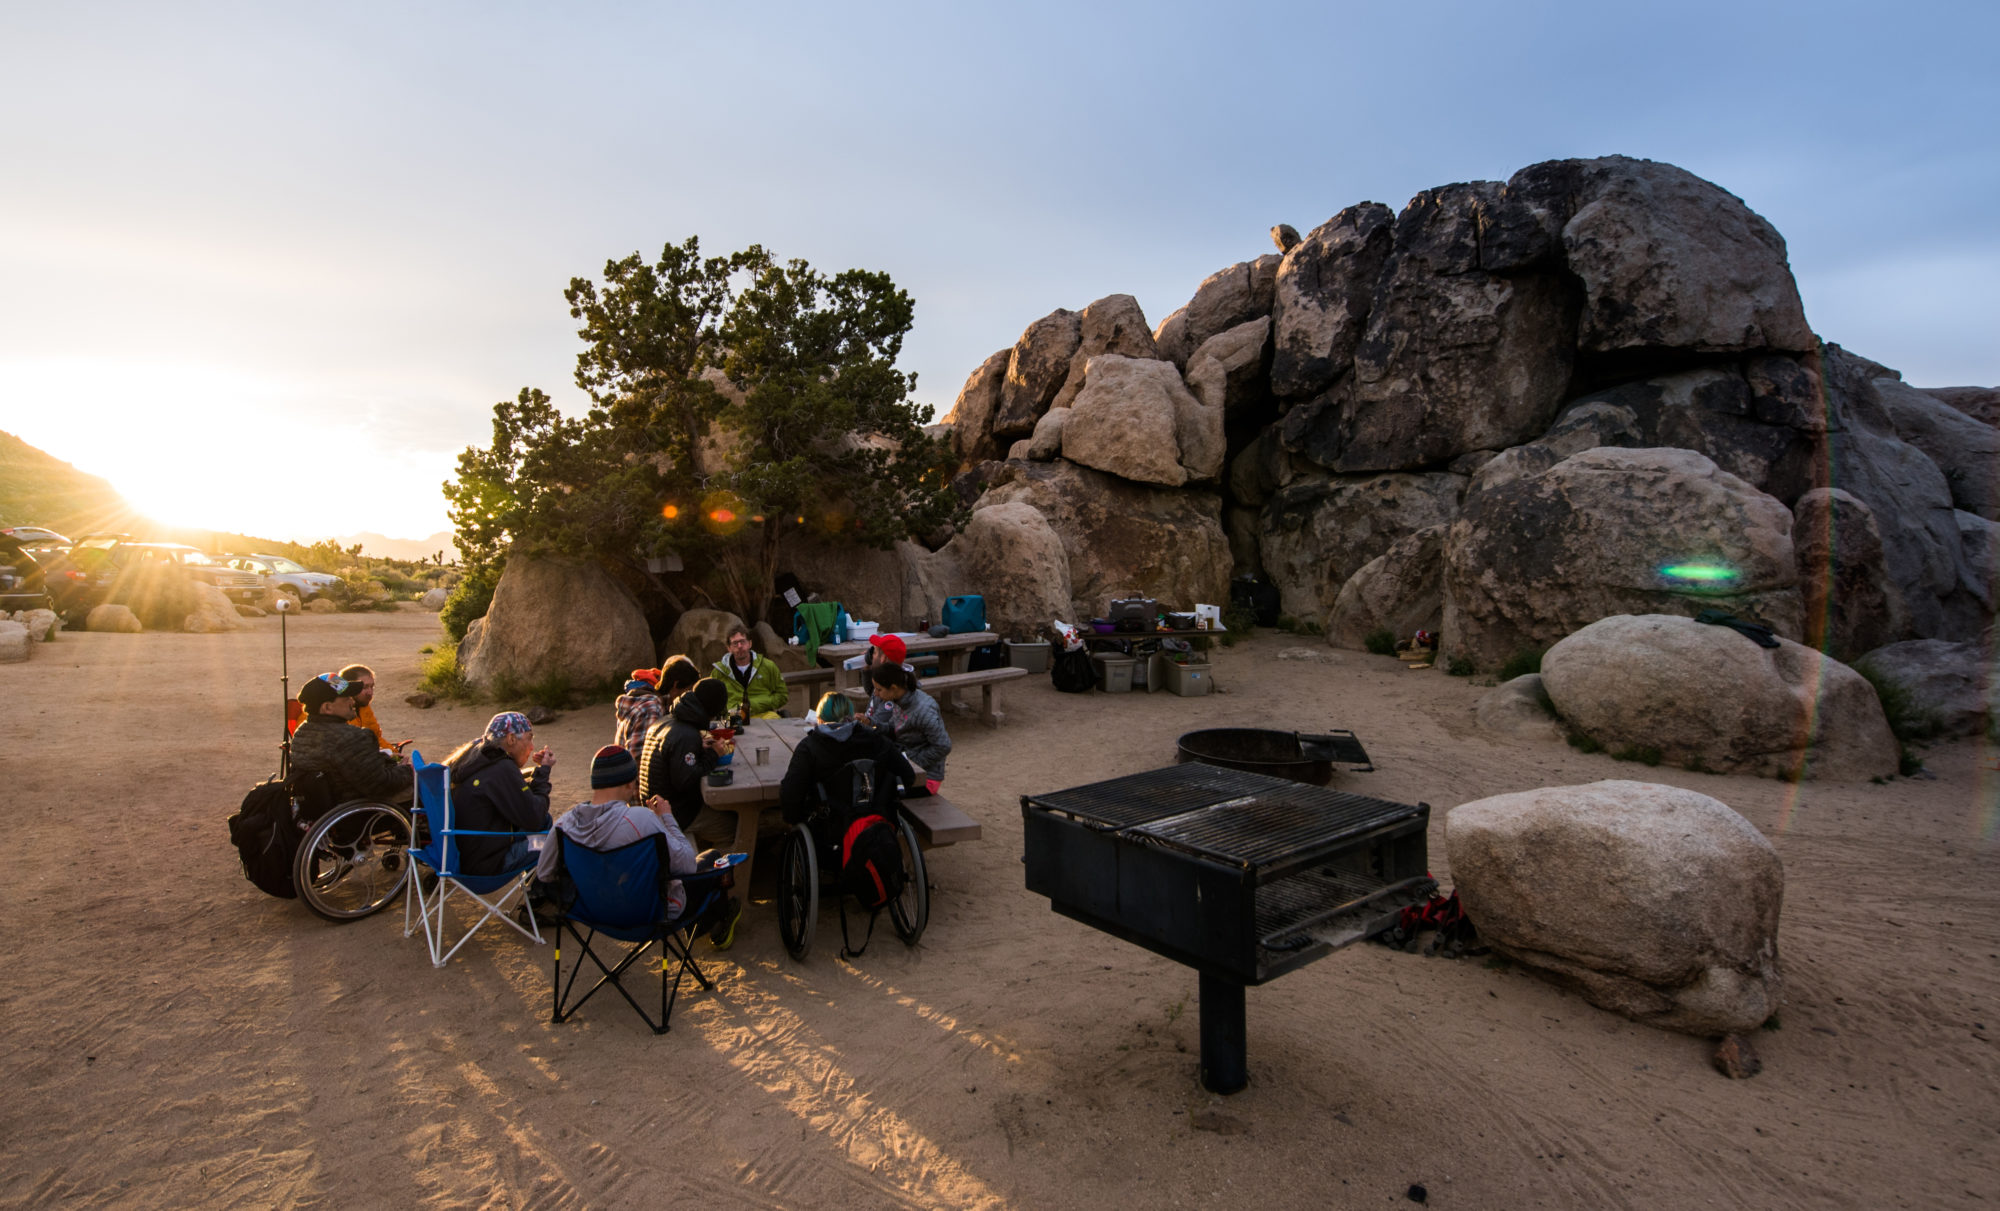 Joshua Tree Group Photo at Campground